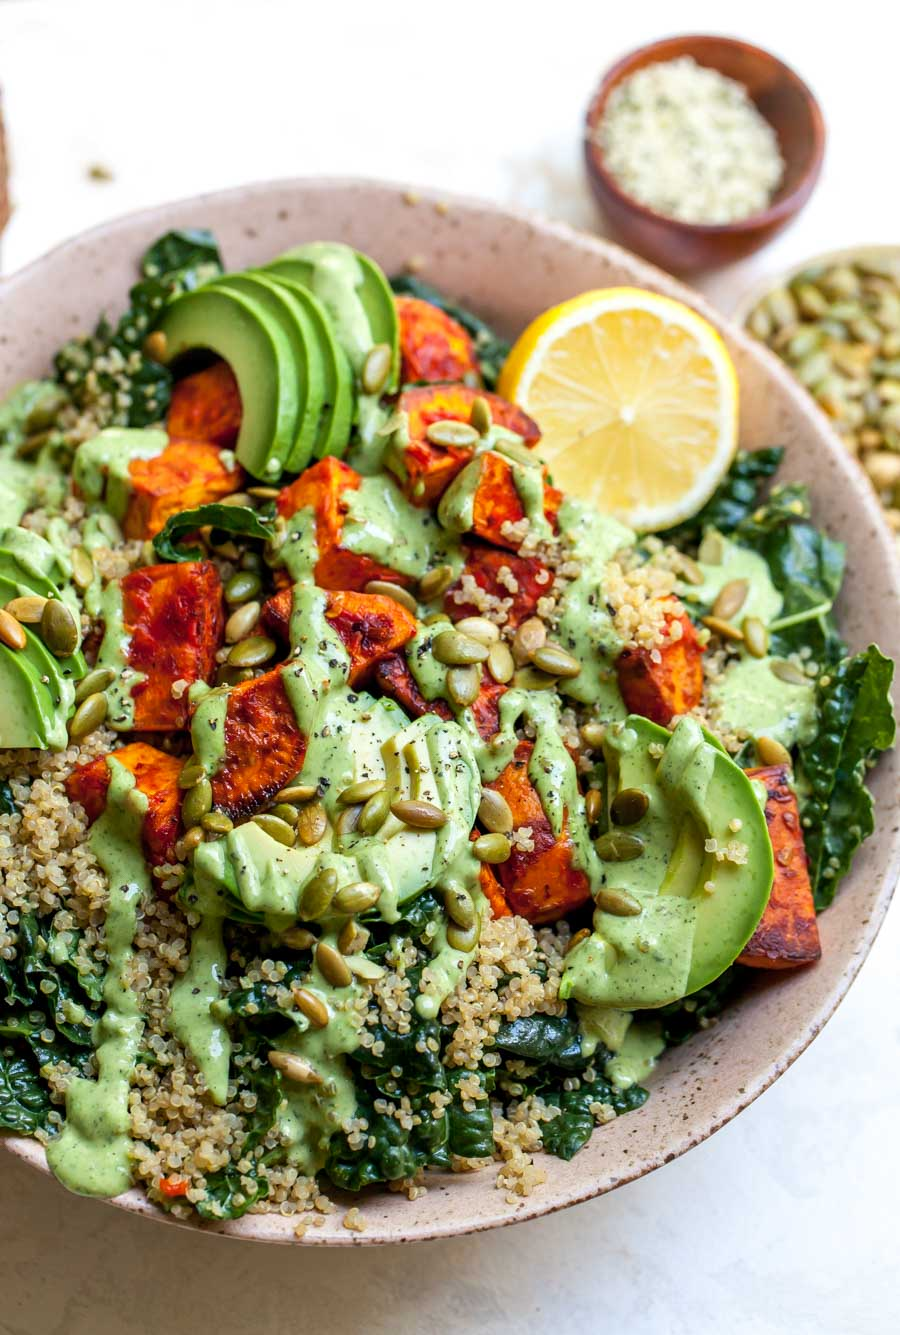 Meal Prep Kale and Quinoa Salad with Roasted Sweet Potatoes and Tahini Dressing